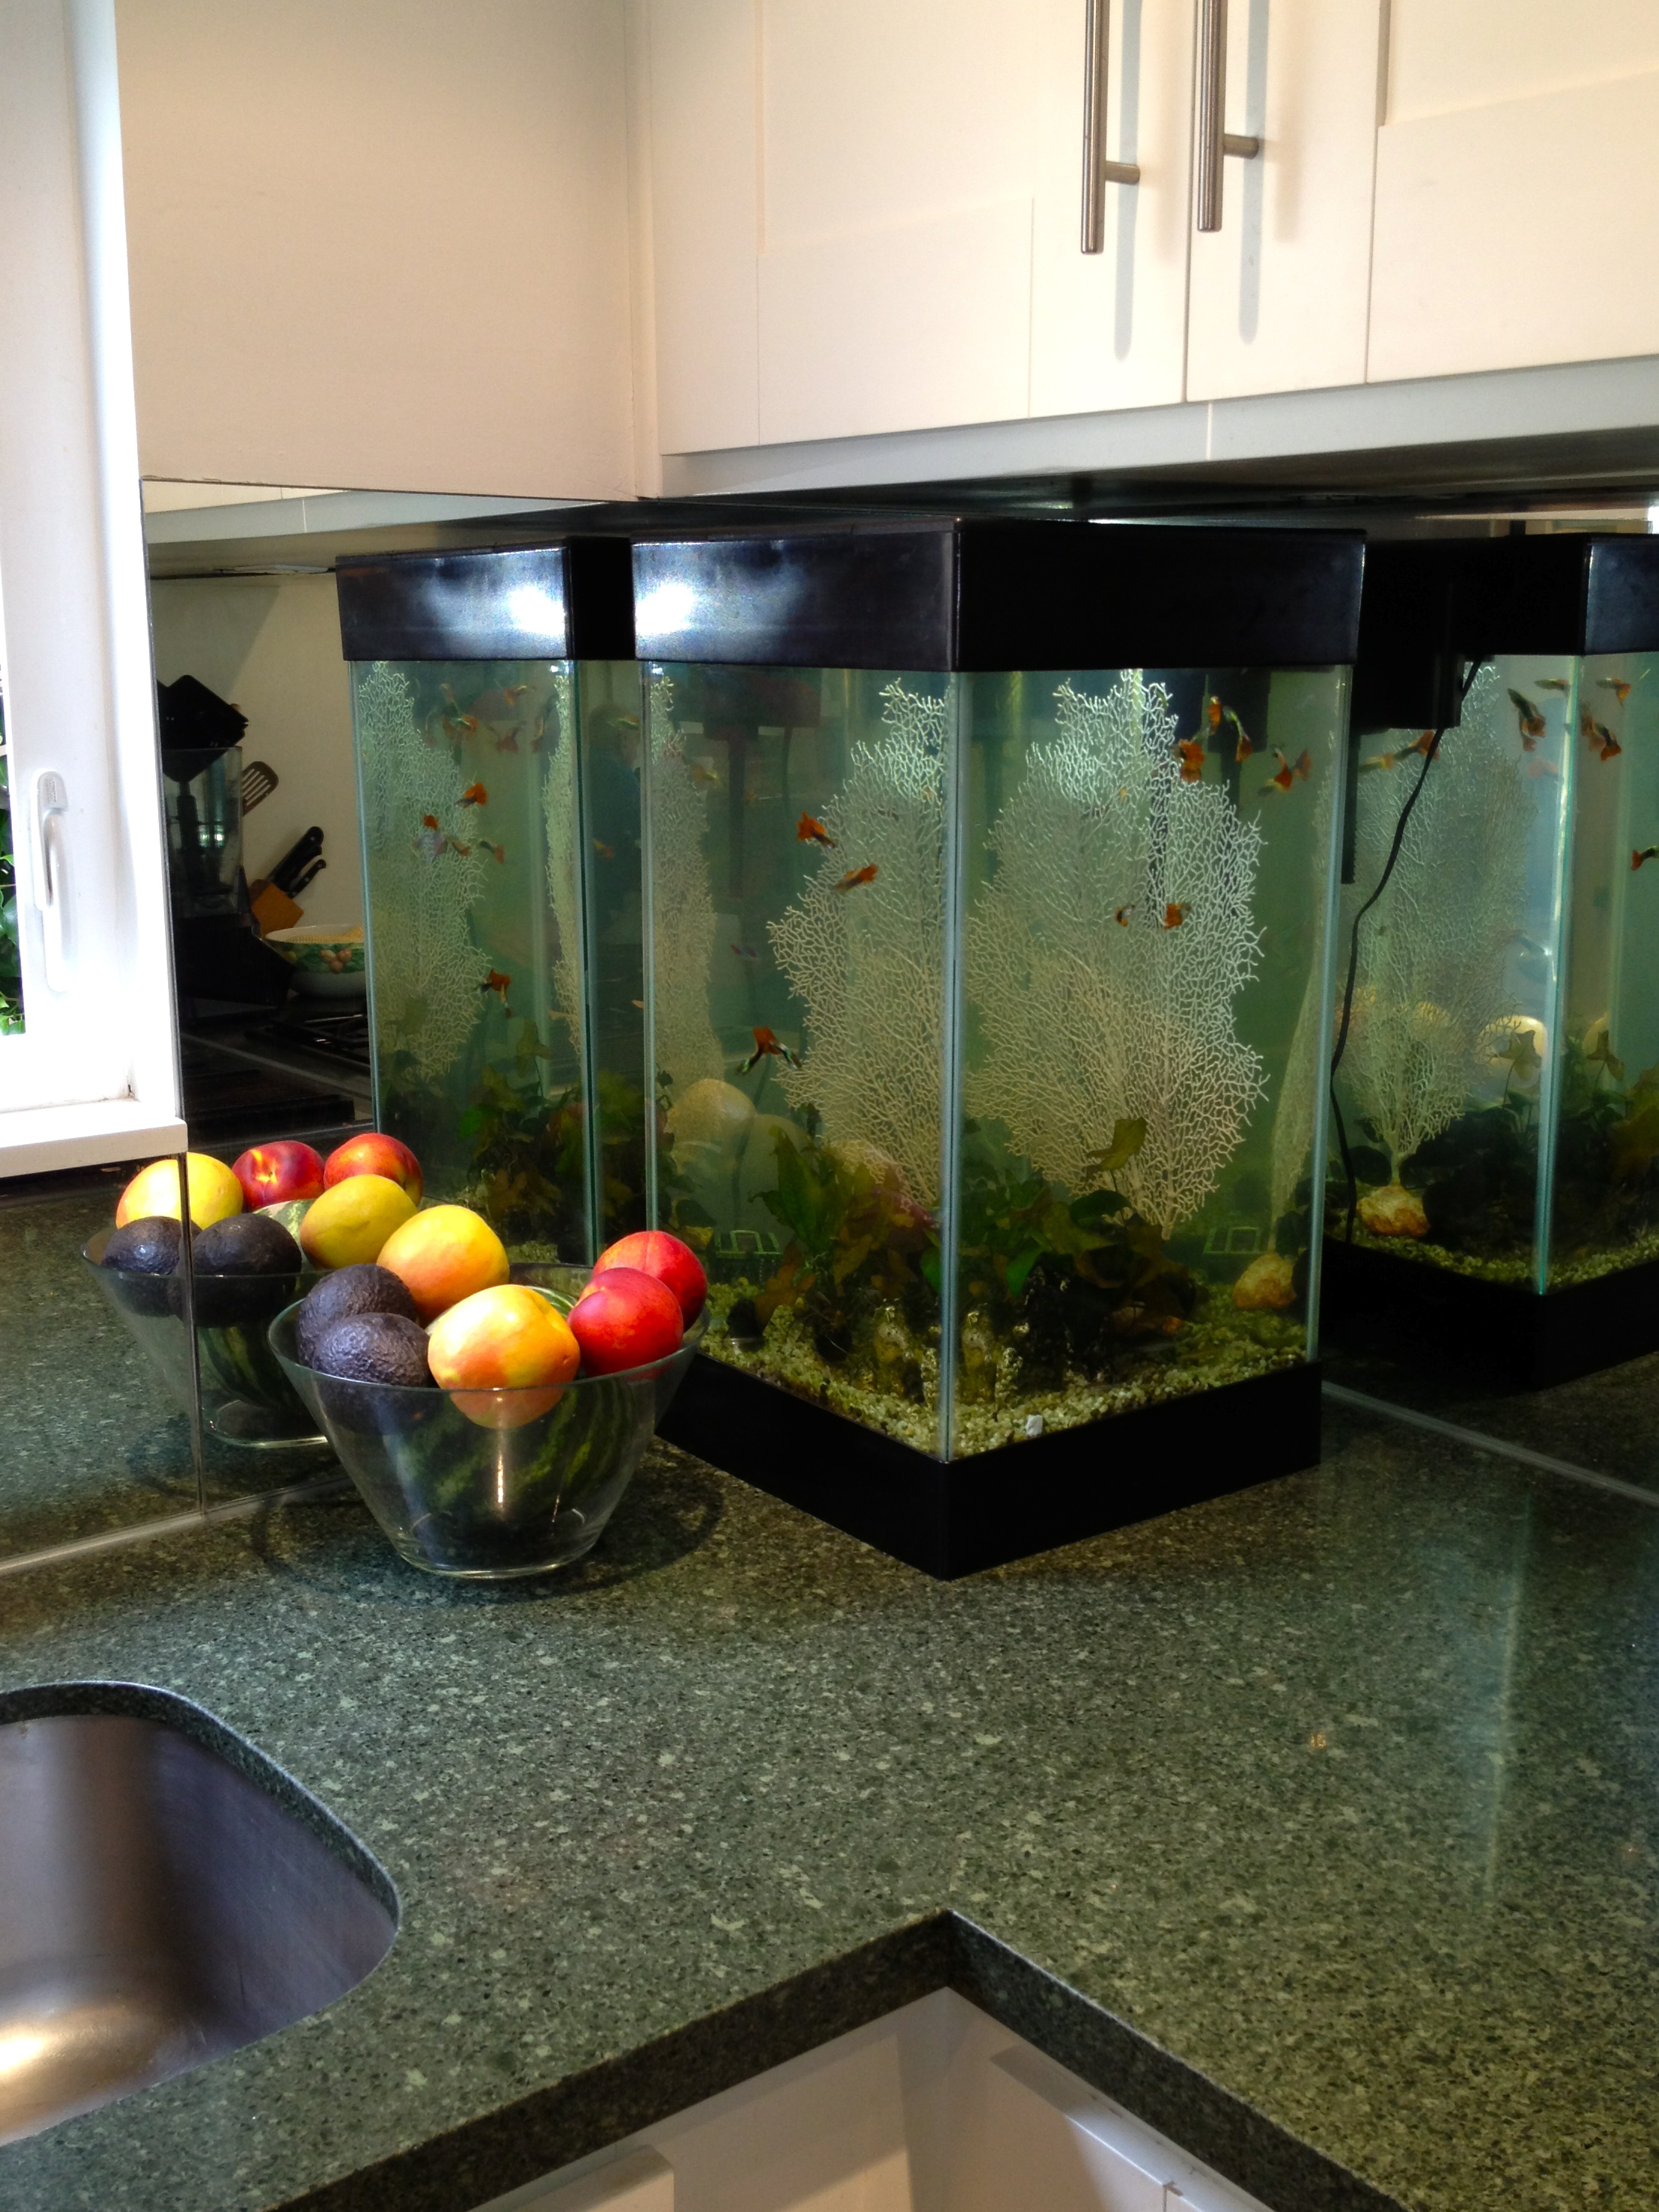 Fish tank in kitchen -  Kitchen Fish